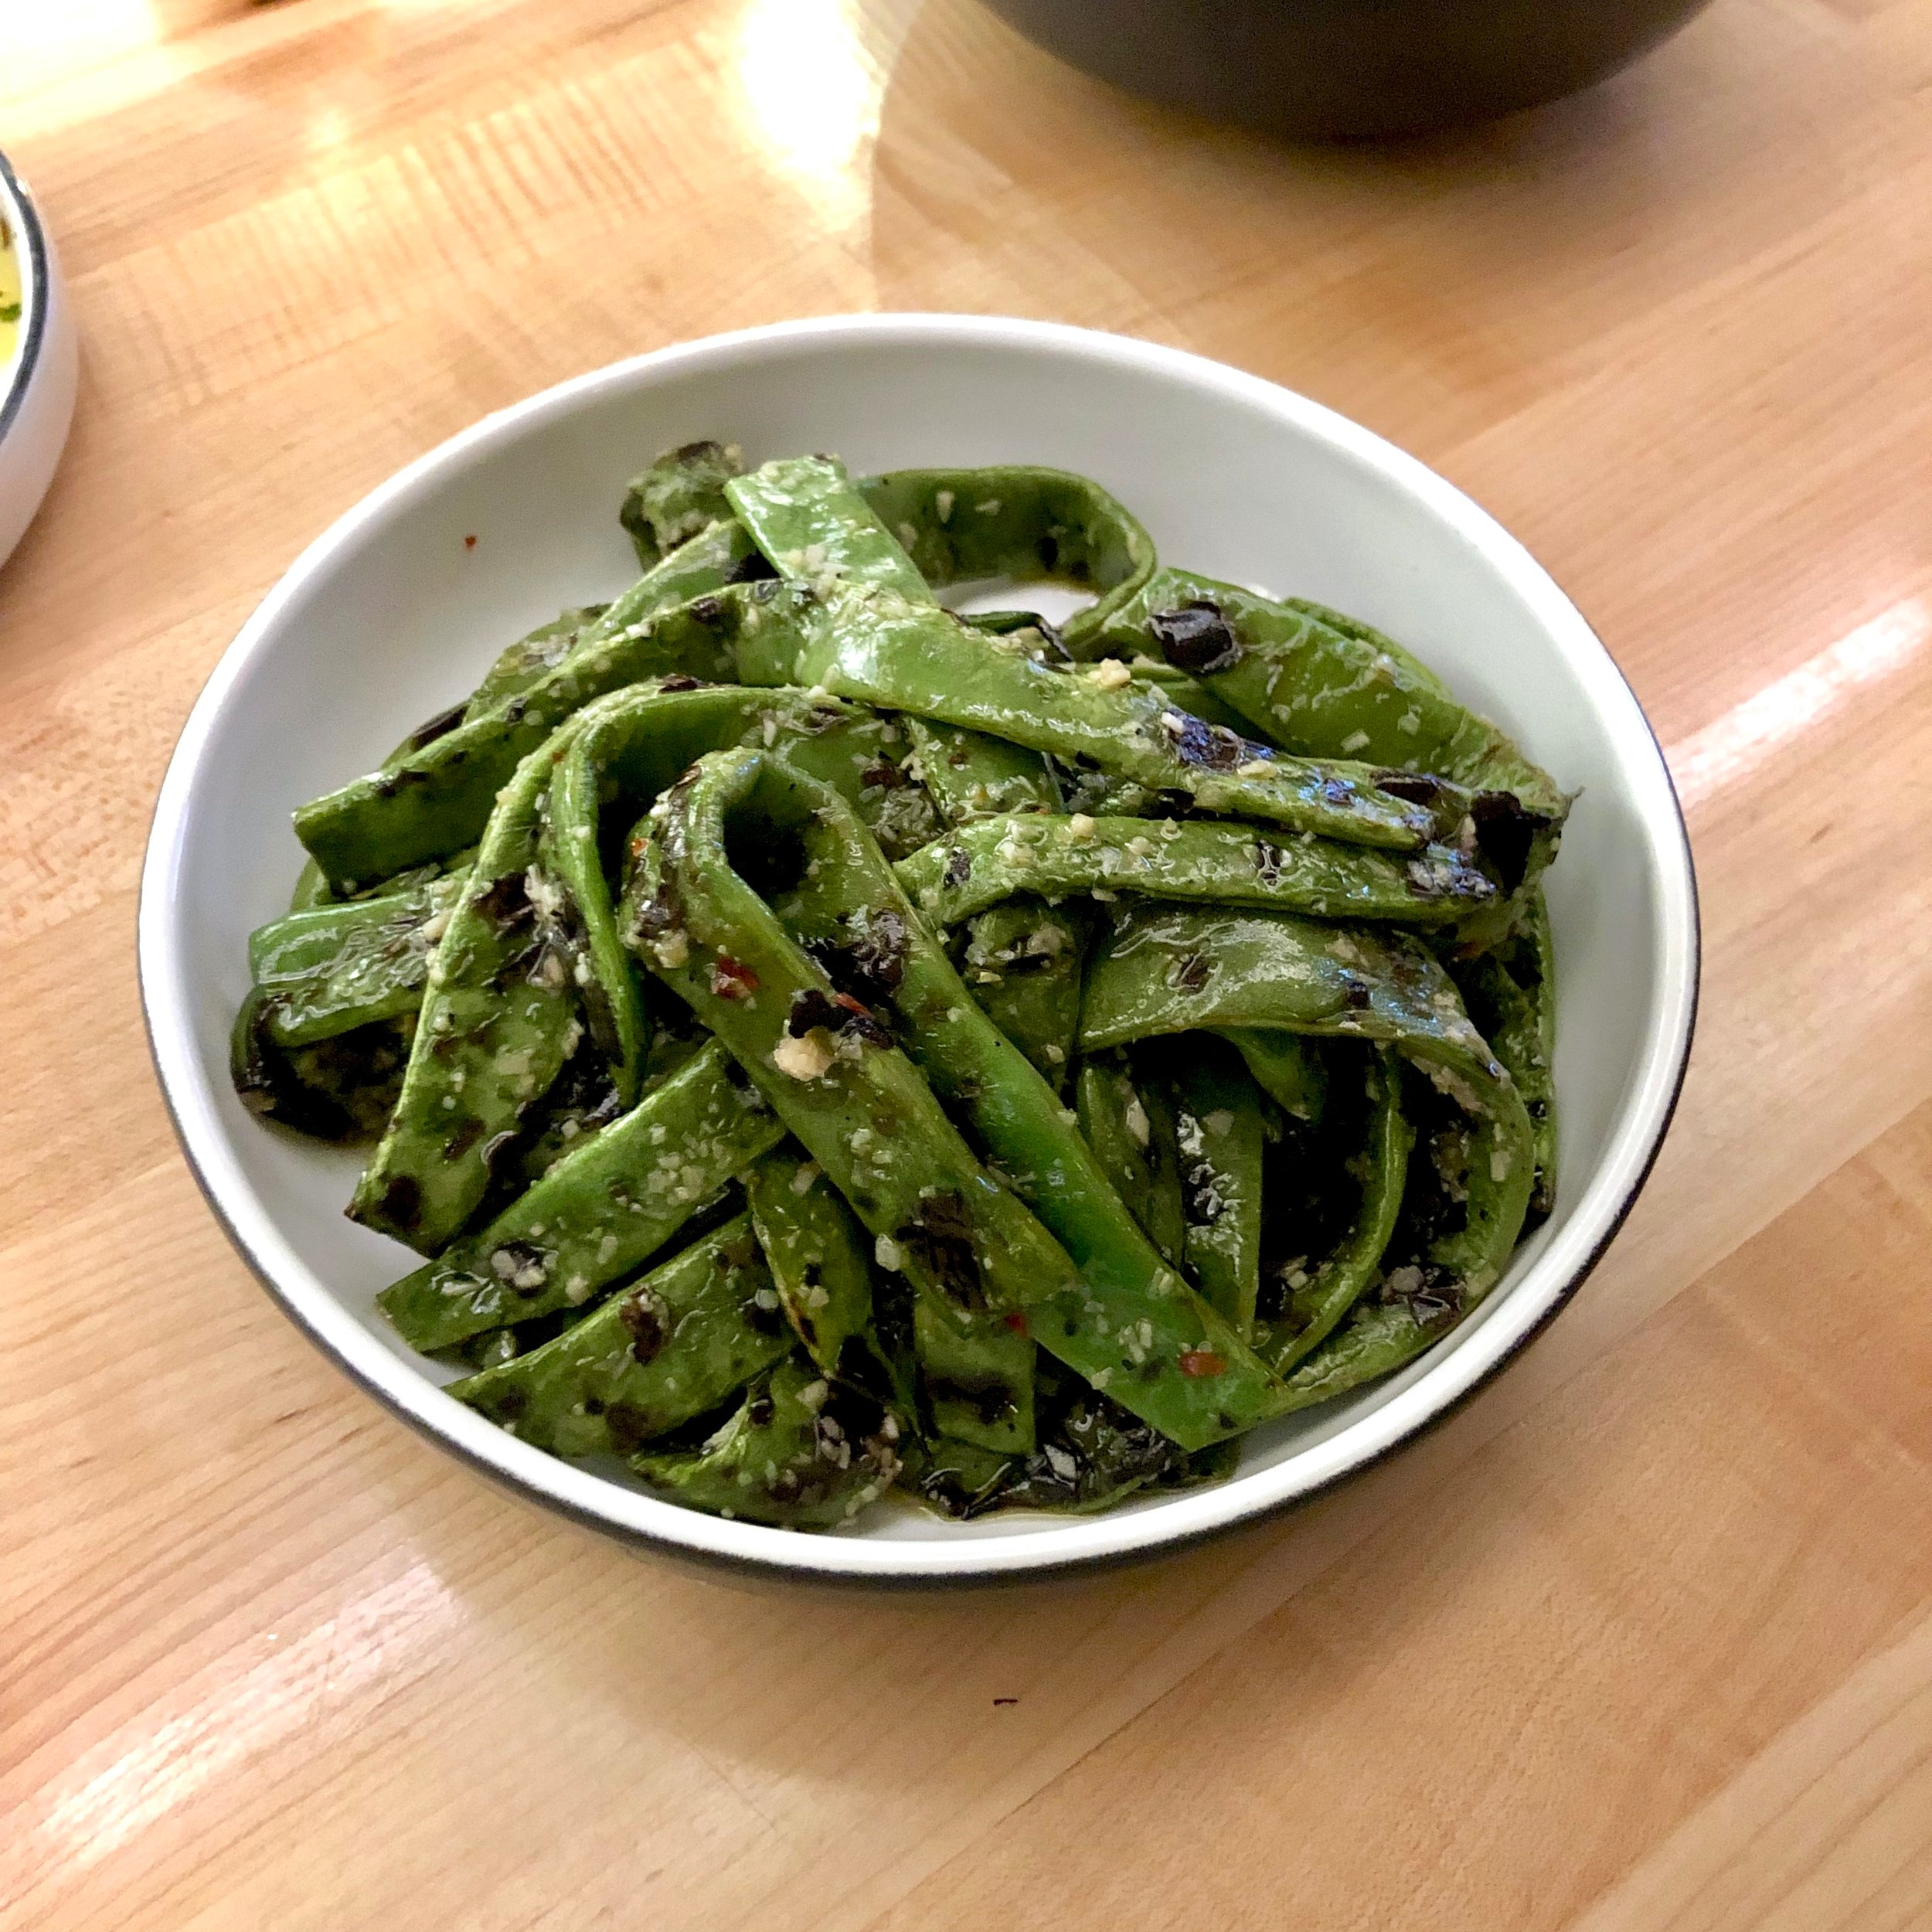 grilled runner beans, garlic vinaigrette, chilies